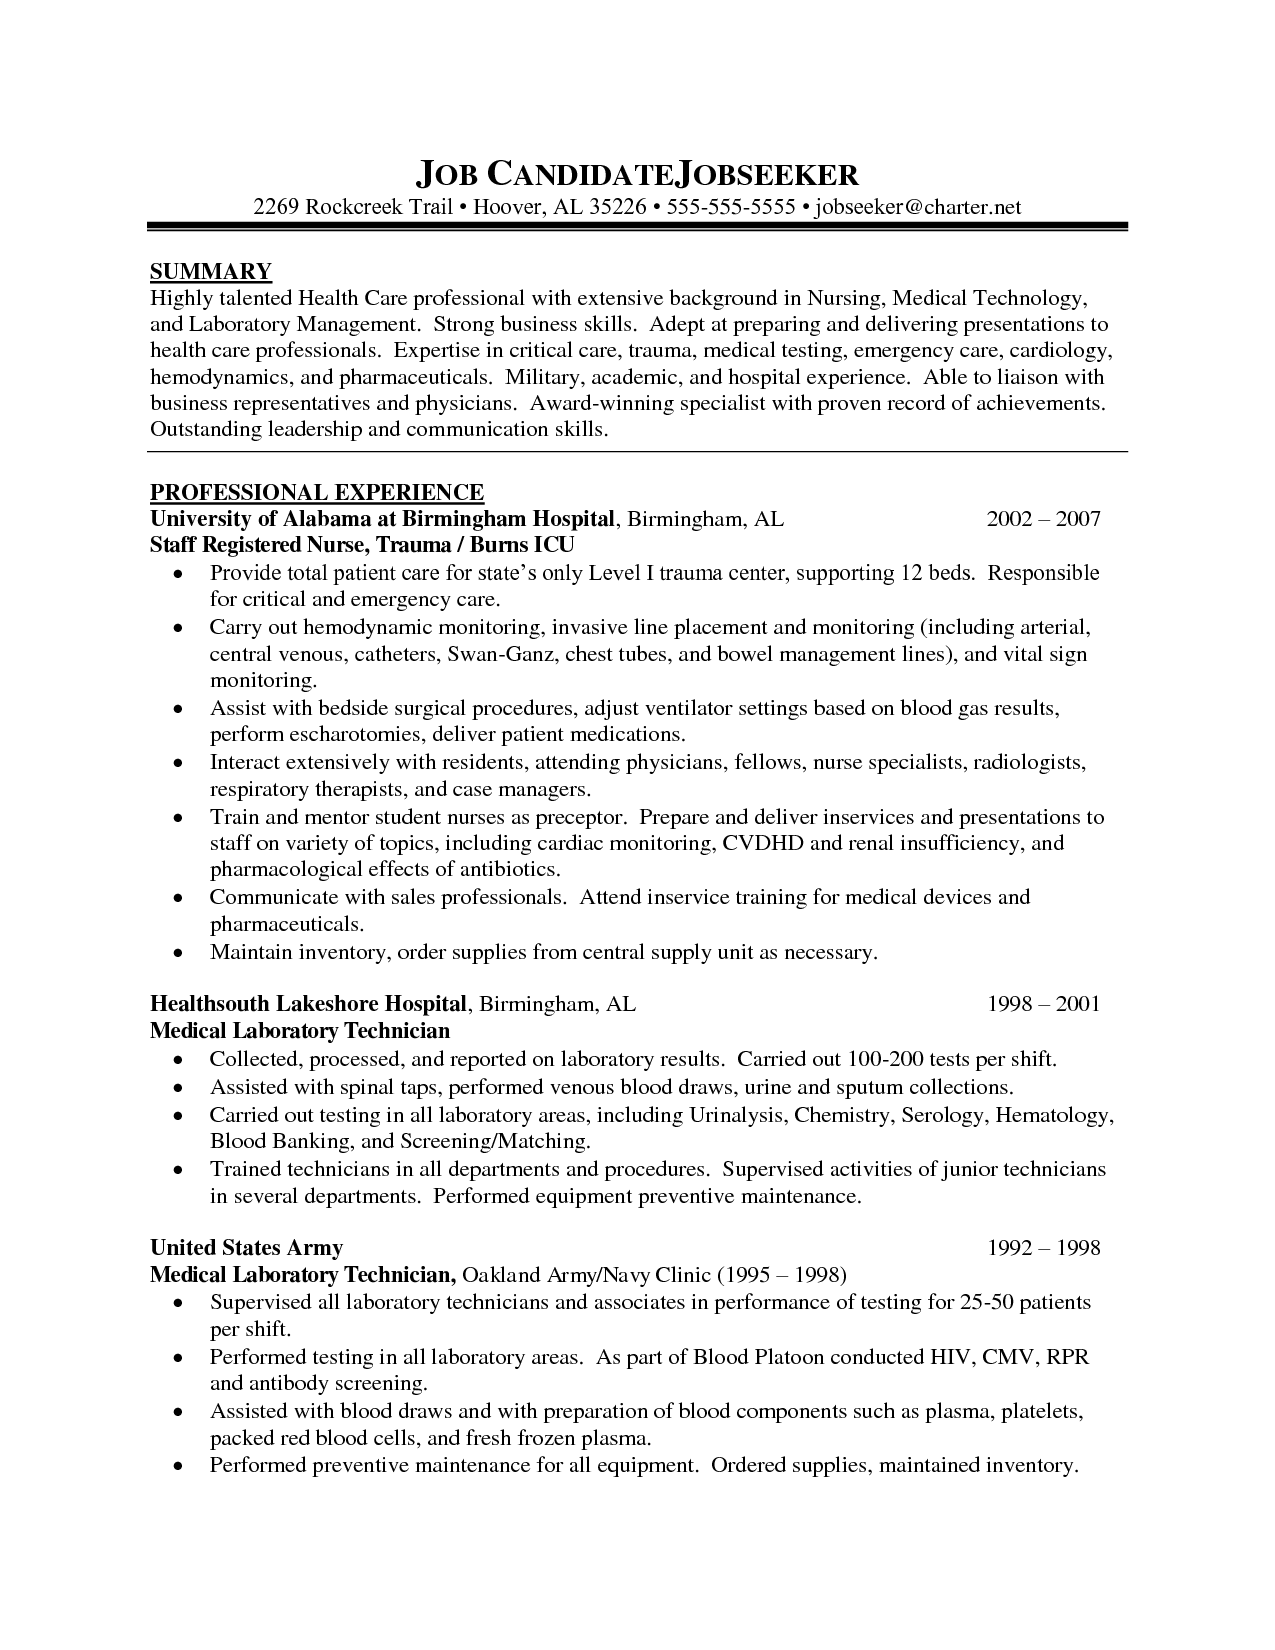 Oncology Nurse Resume Objective Http Www Resumecareer Info